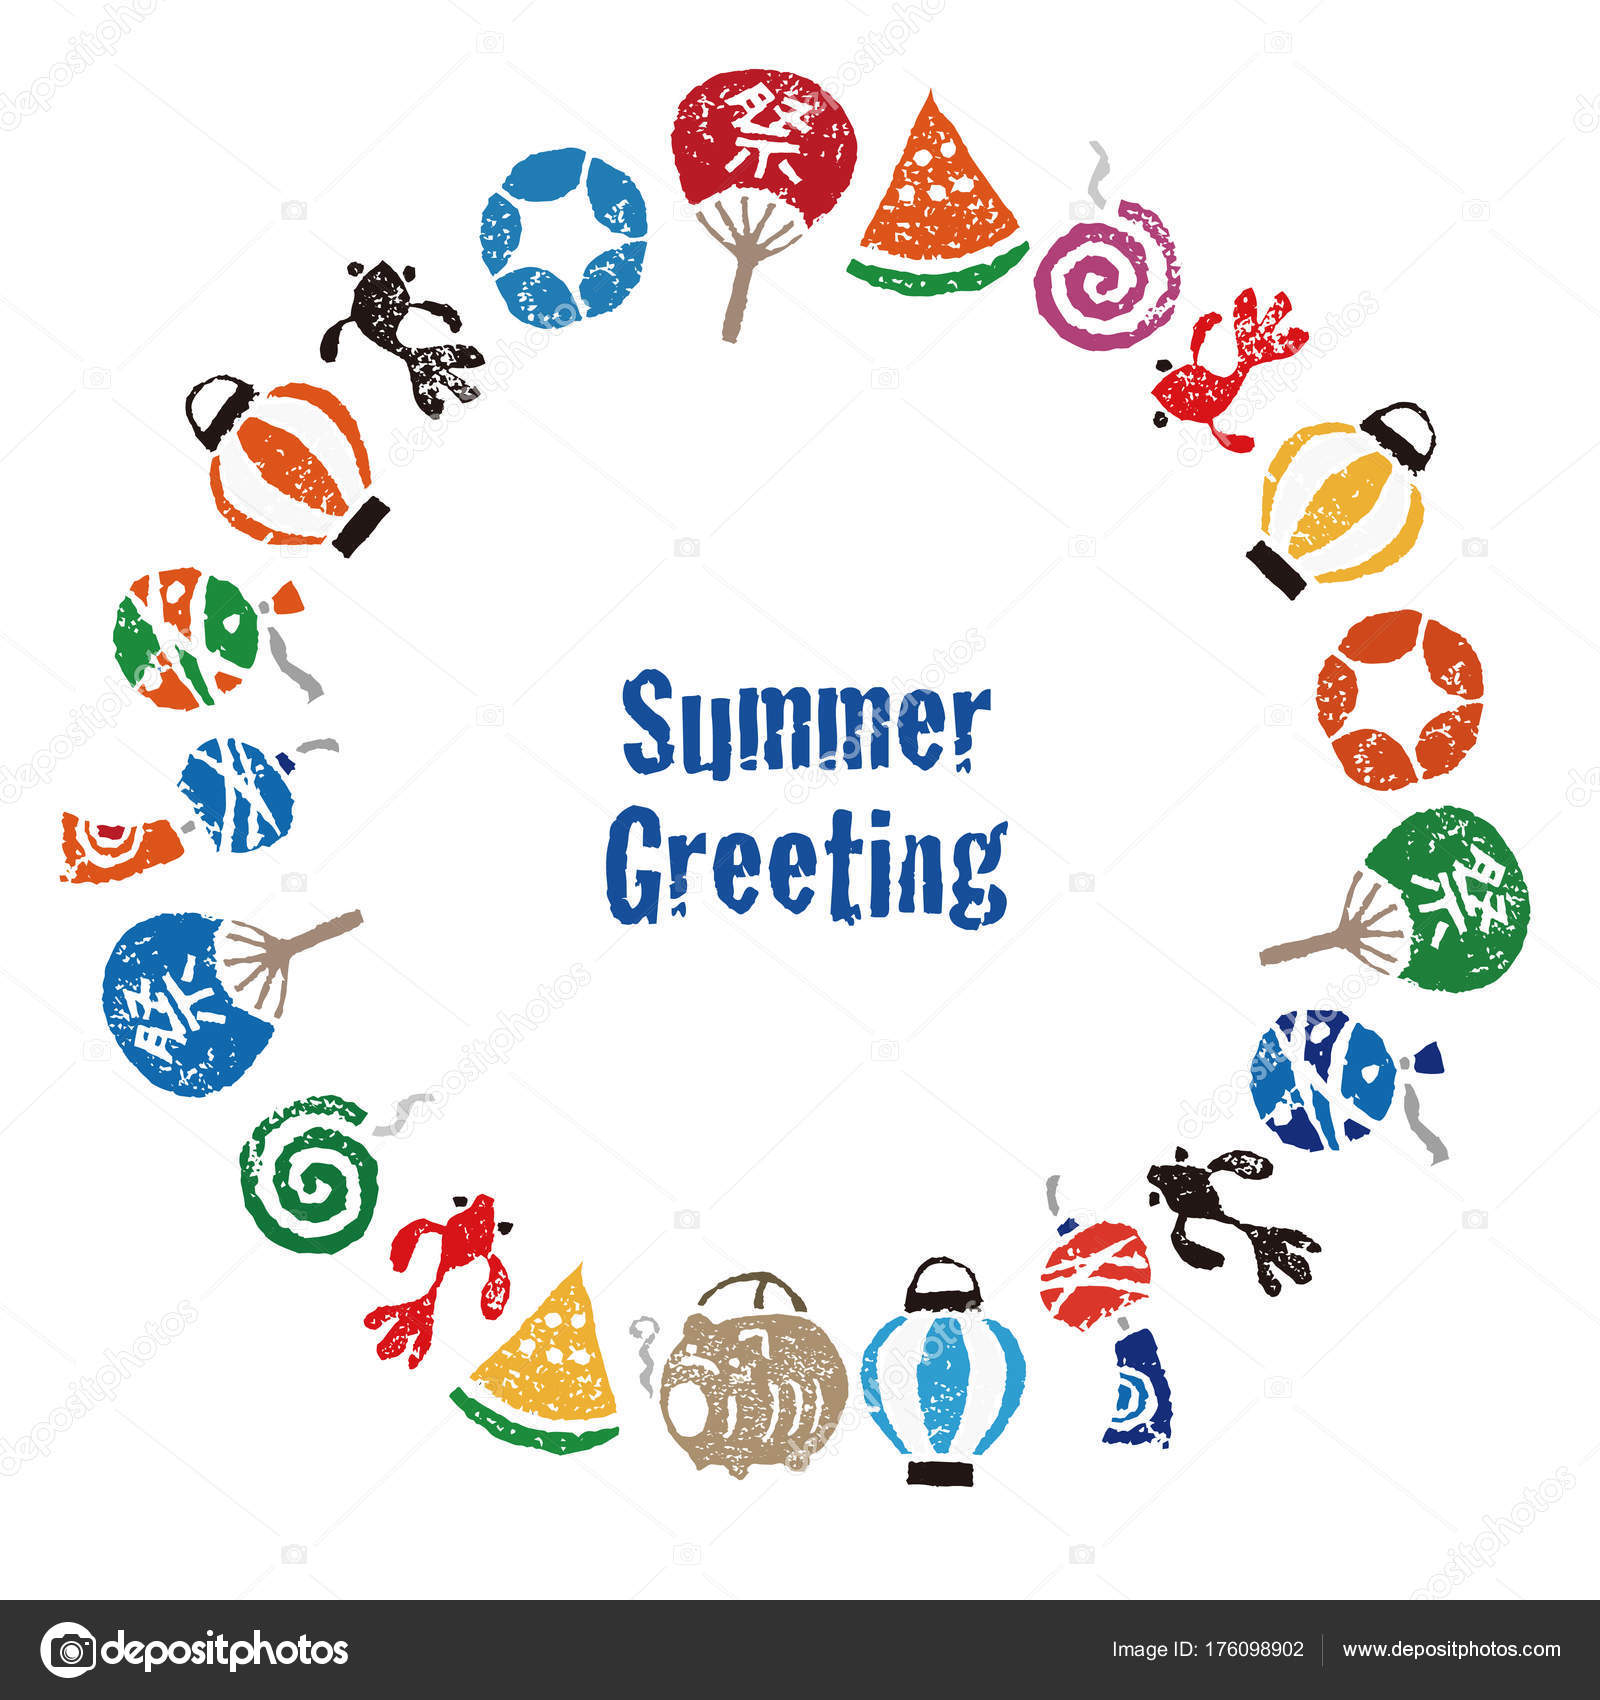 Summer greeting with japanese summer elements stock vector summer greeting with japanese summer elements stock vector m4hsunfo